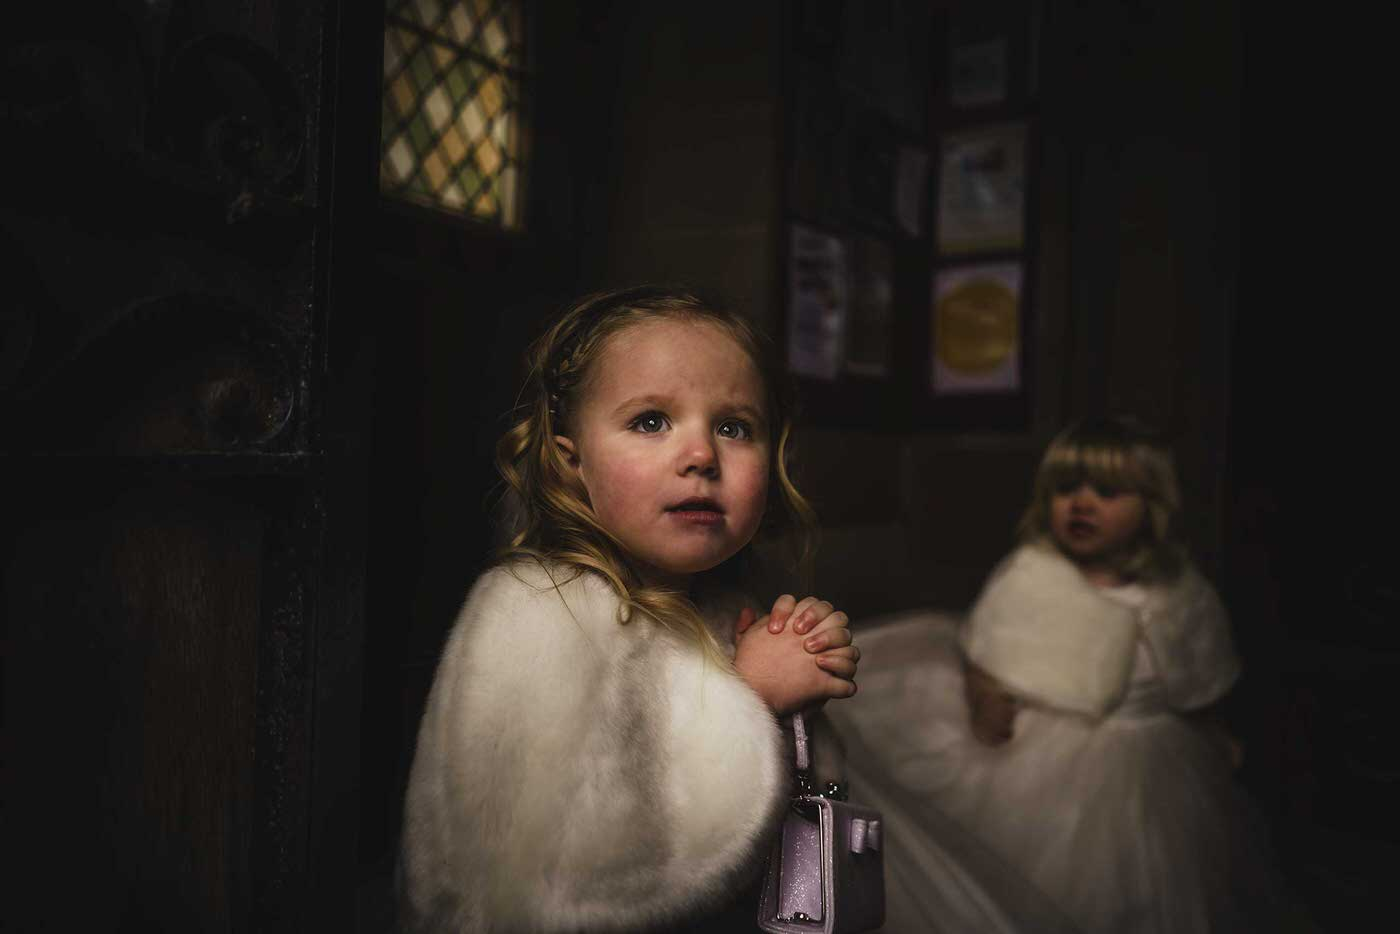 beautiful flower girl at Church, image taken by the best wedding photographer in Shropshire